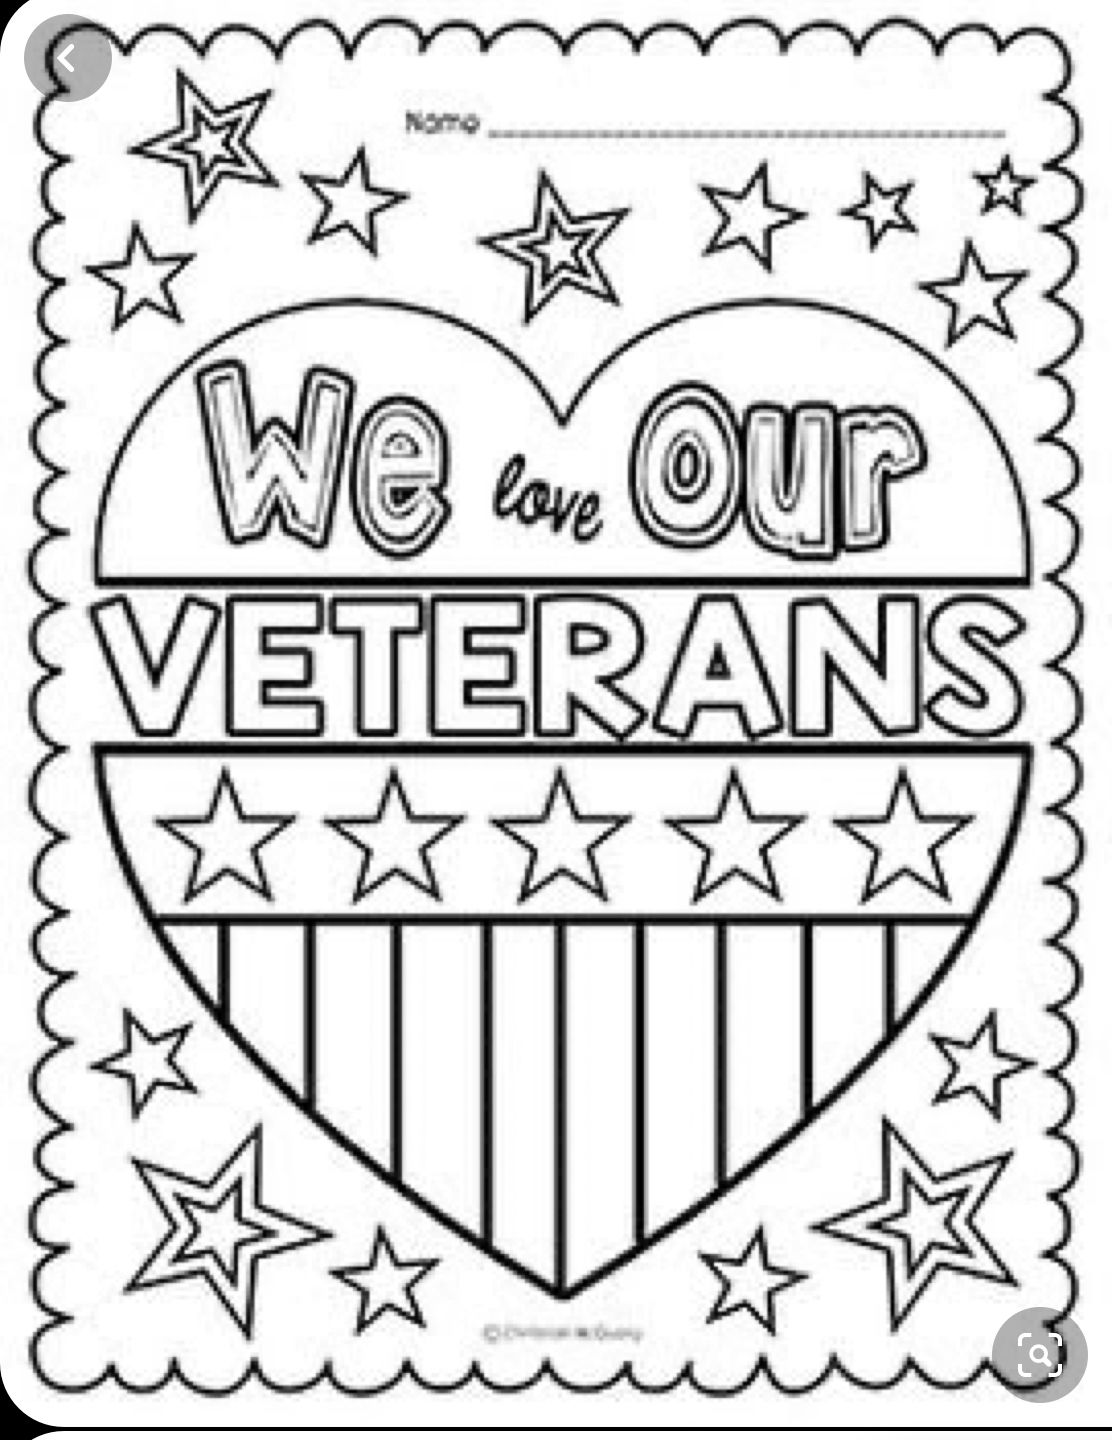 Pin By Marilyn Rogers On Veterans In 2020 Veterans Day Coloring Page Veterans Day Activities Free Veterans Day